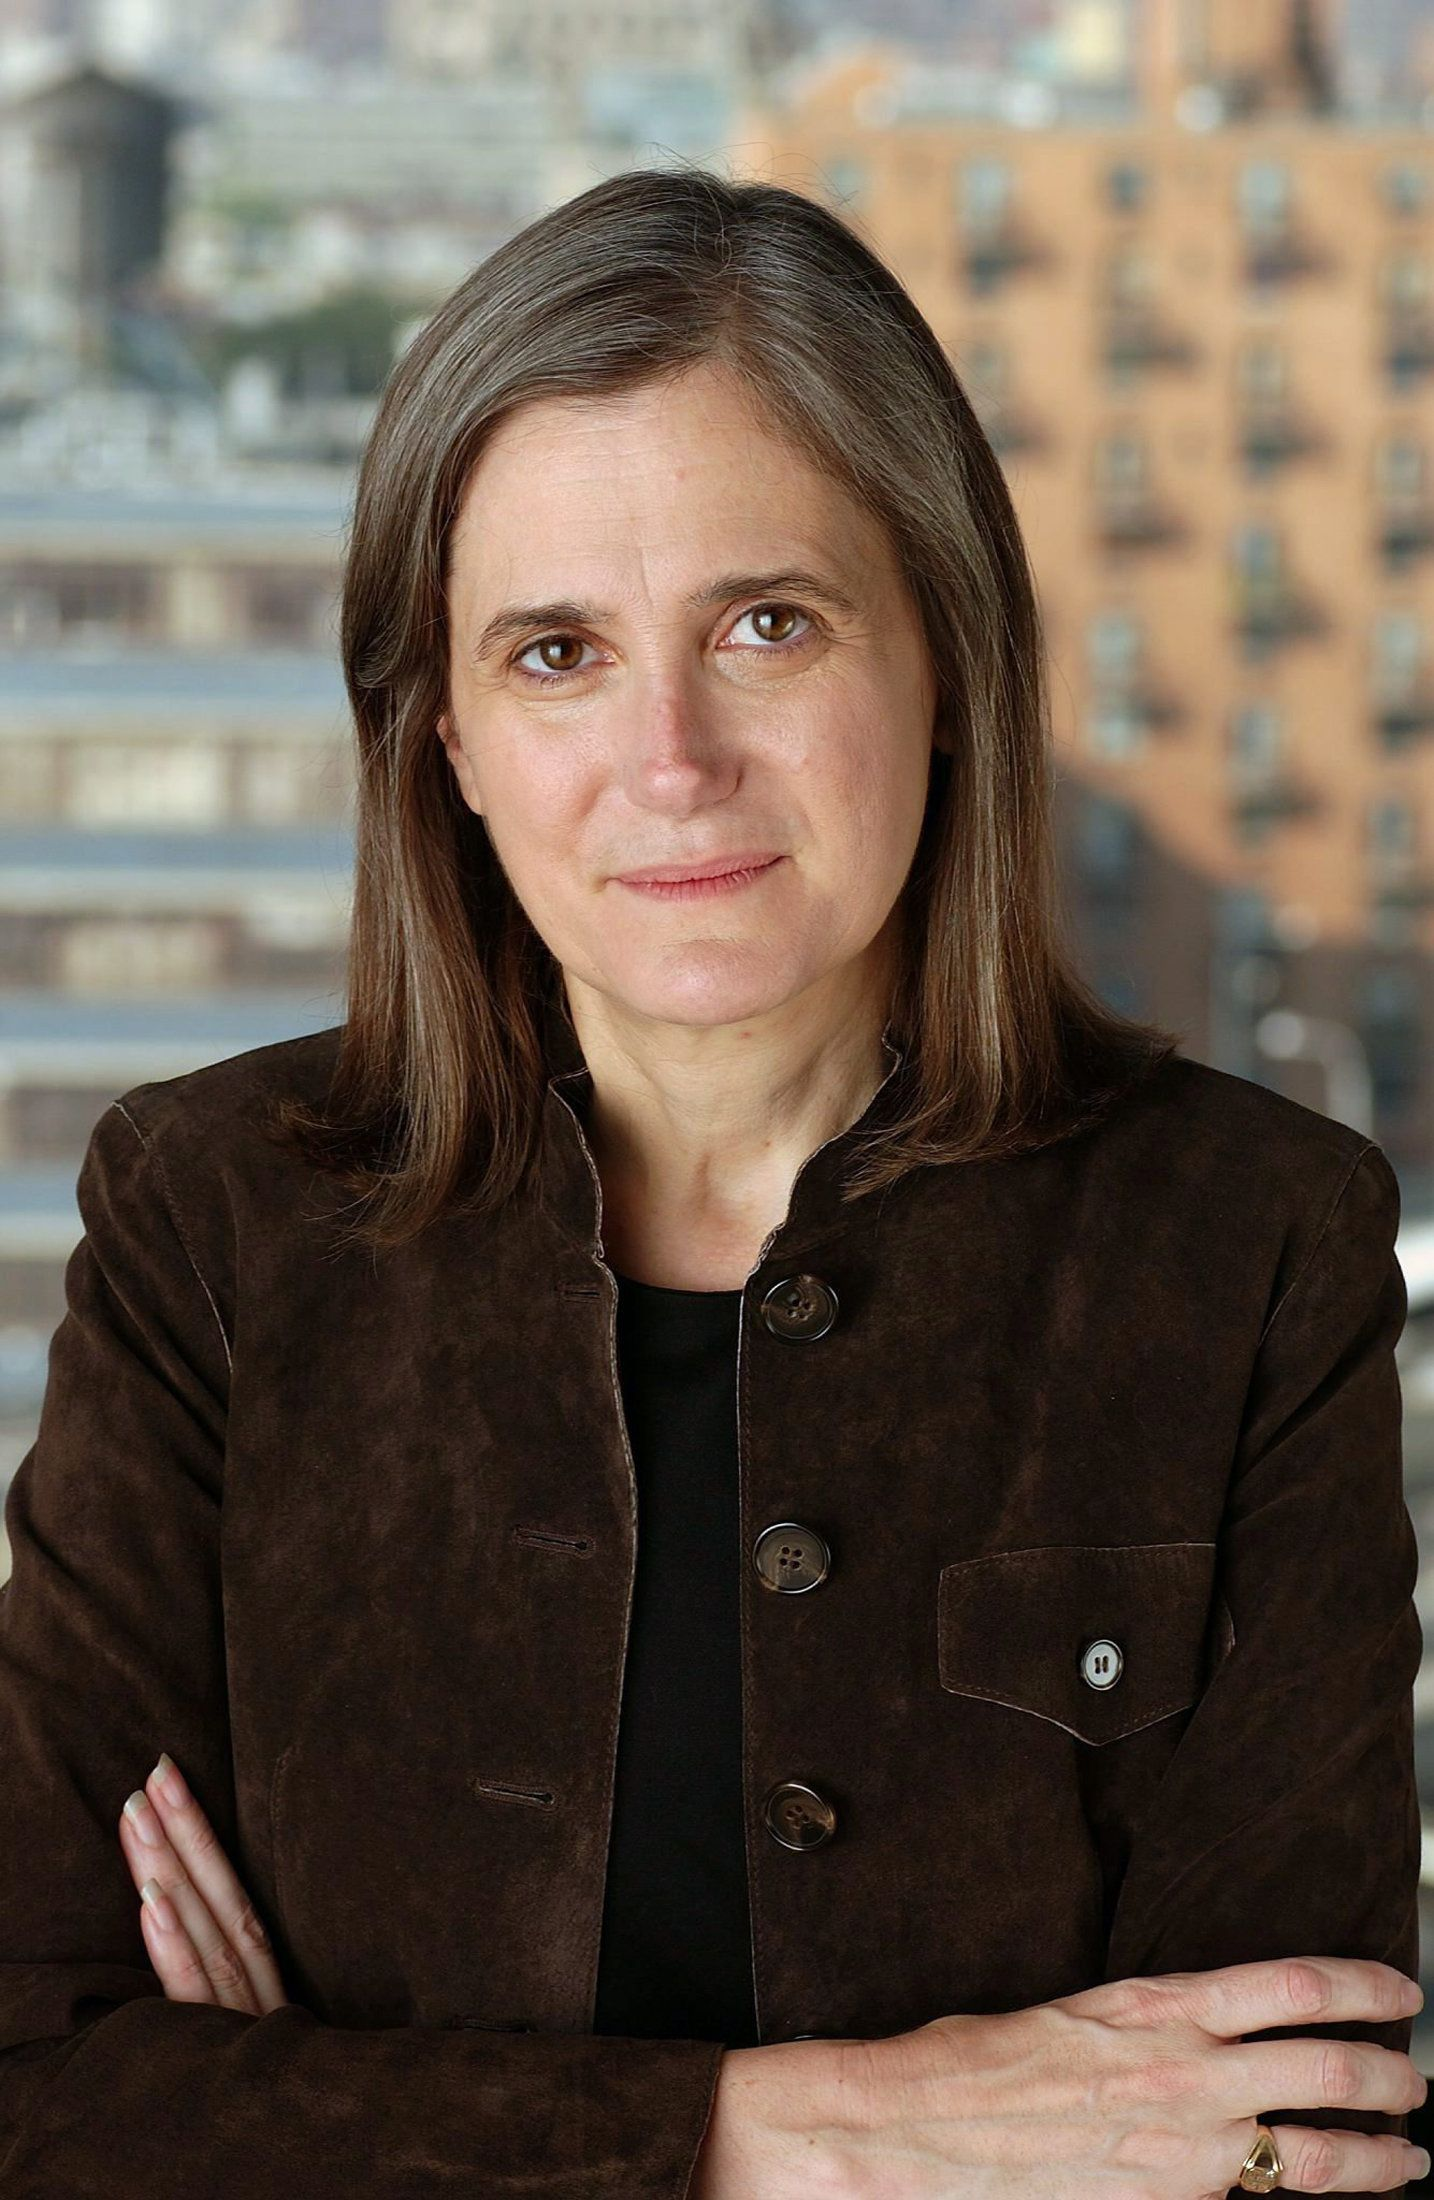 Amy Goodman of the U.S. is pictured in a handout photo issued October 1, 2008. The Right Livelihood Award, or 'Alternative Nobel' named on Wednesday four laureates for their work to promote peace, social justice and independent reporting. Goodman is awarded for her independent political journalism. REUTERS /Right Livelihood Foundation/Handout  (SWEDEN)